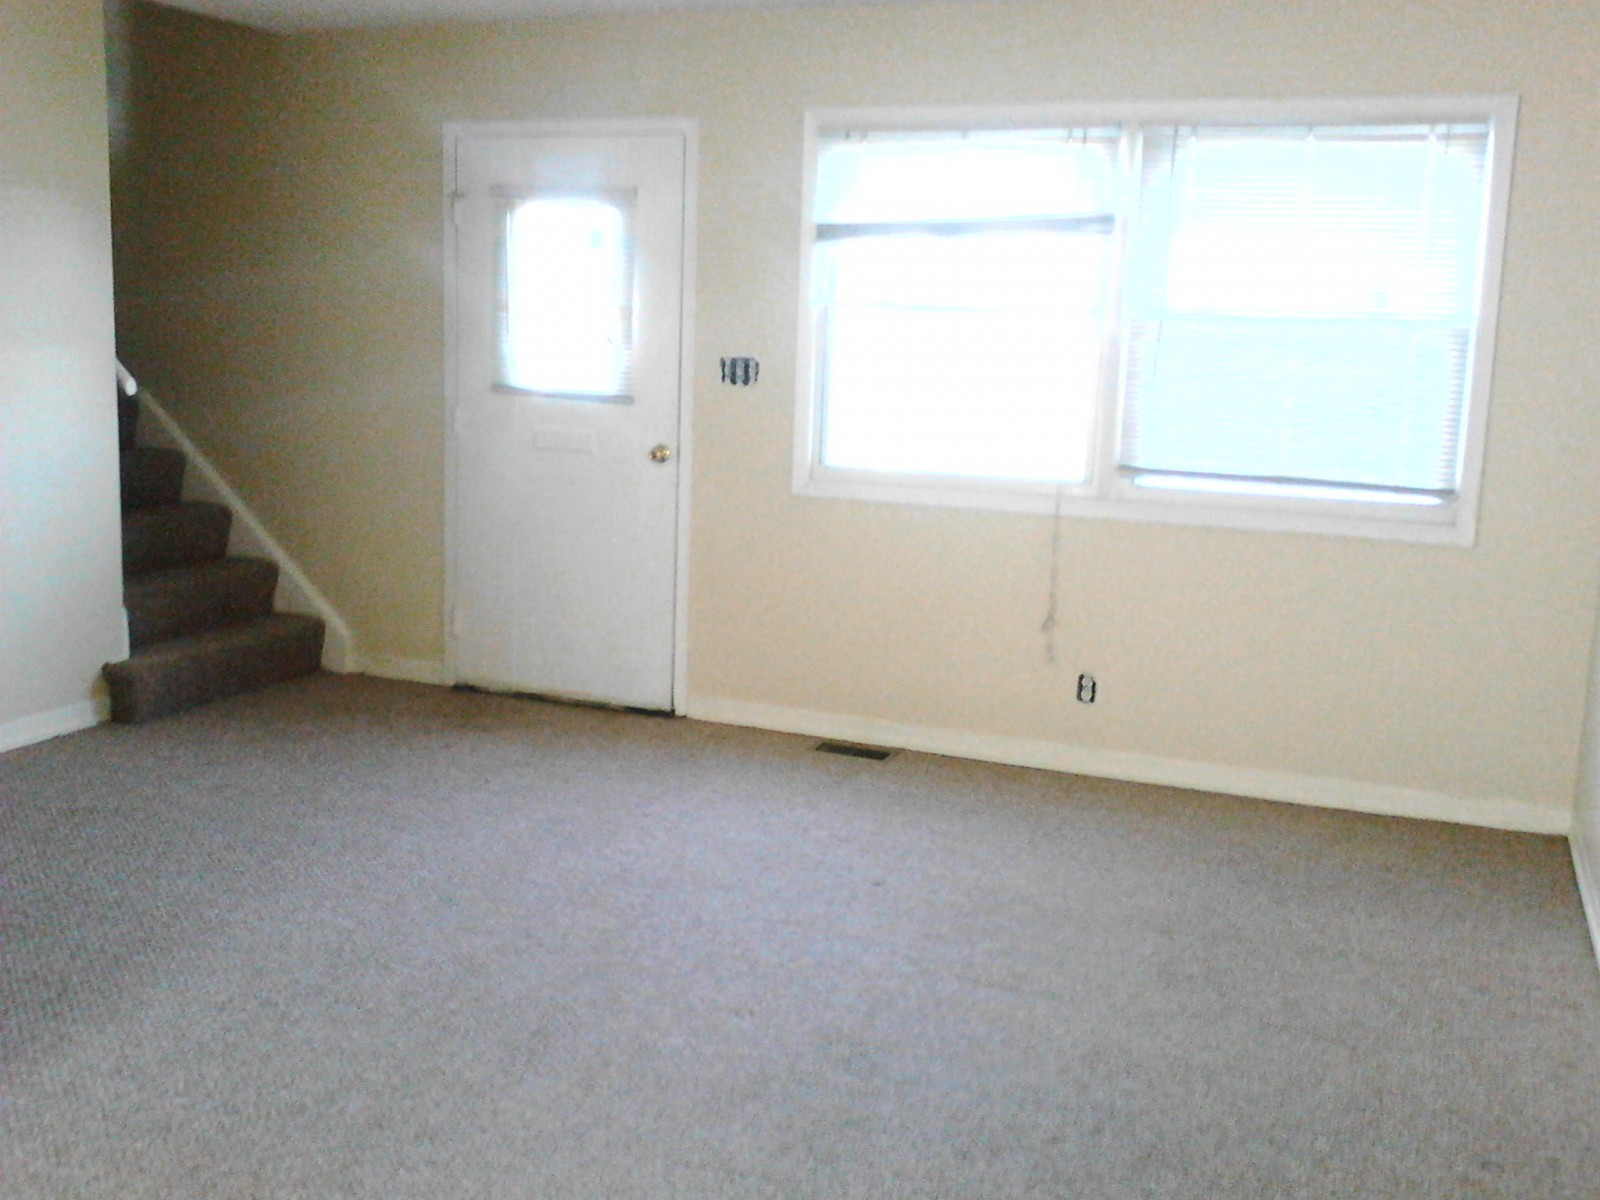 http://www.centralohrealestateinvestment.com/property/condo-for-rent-in-43217